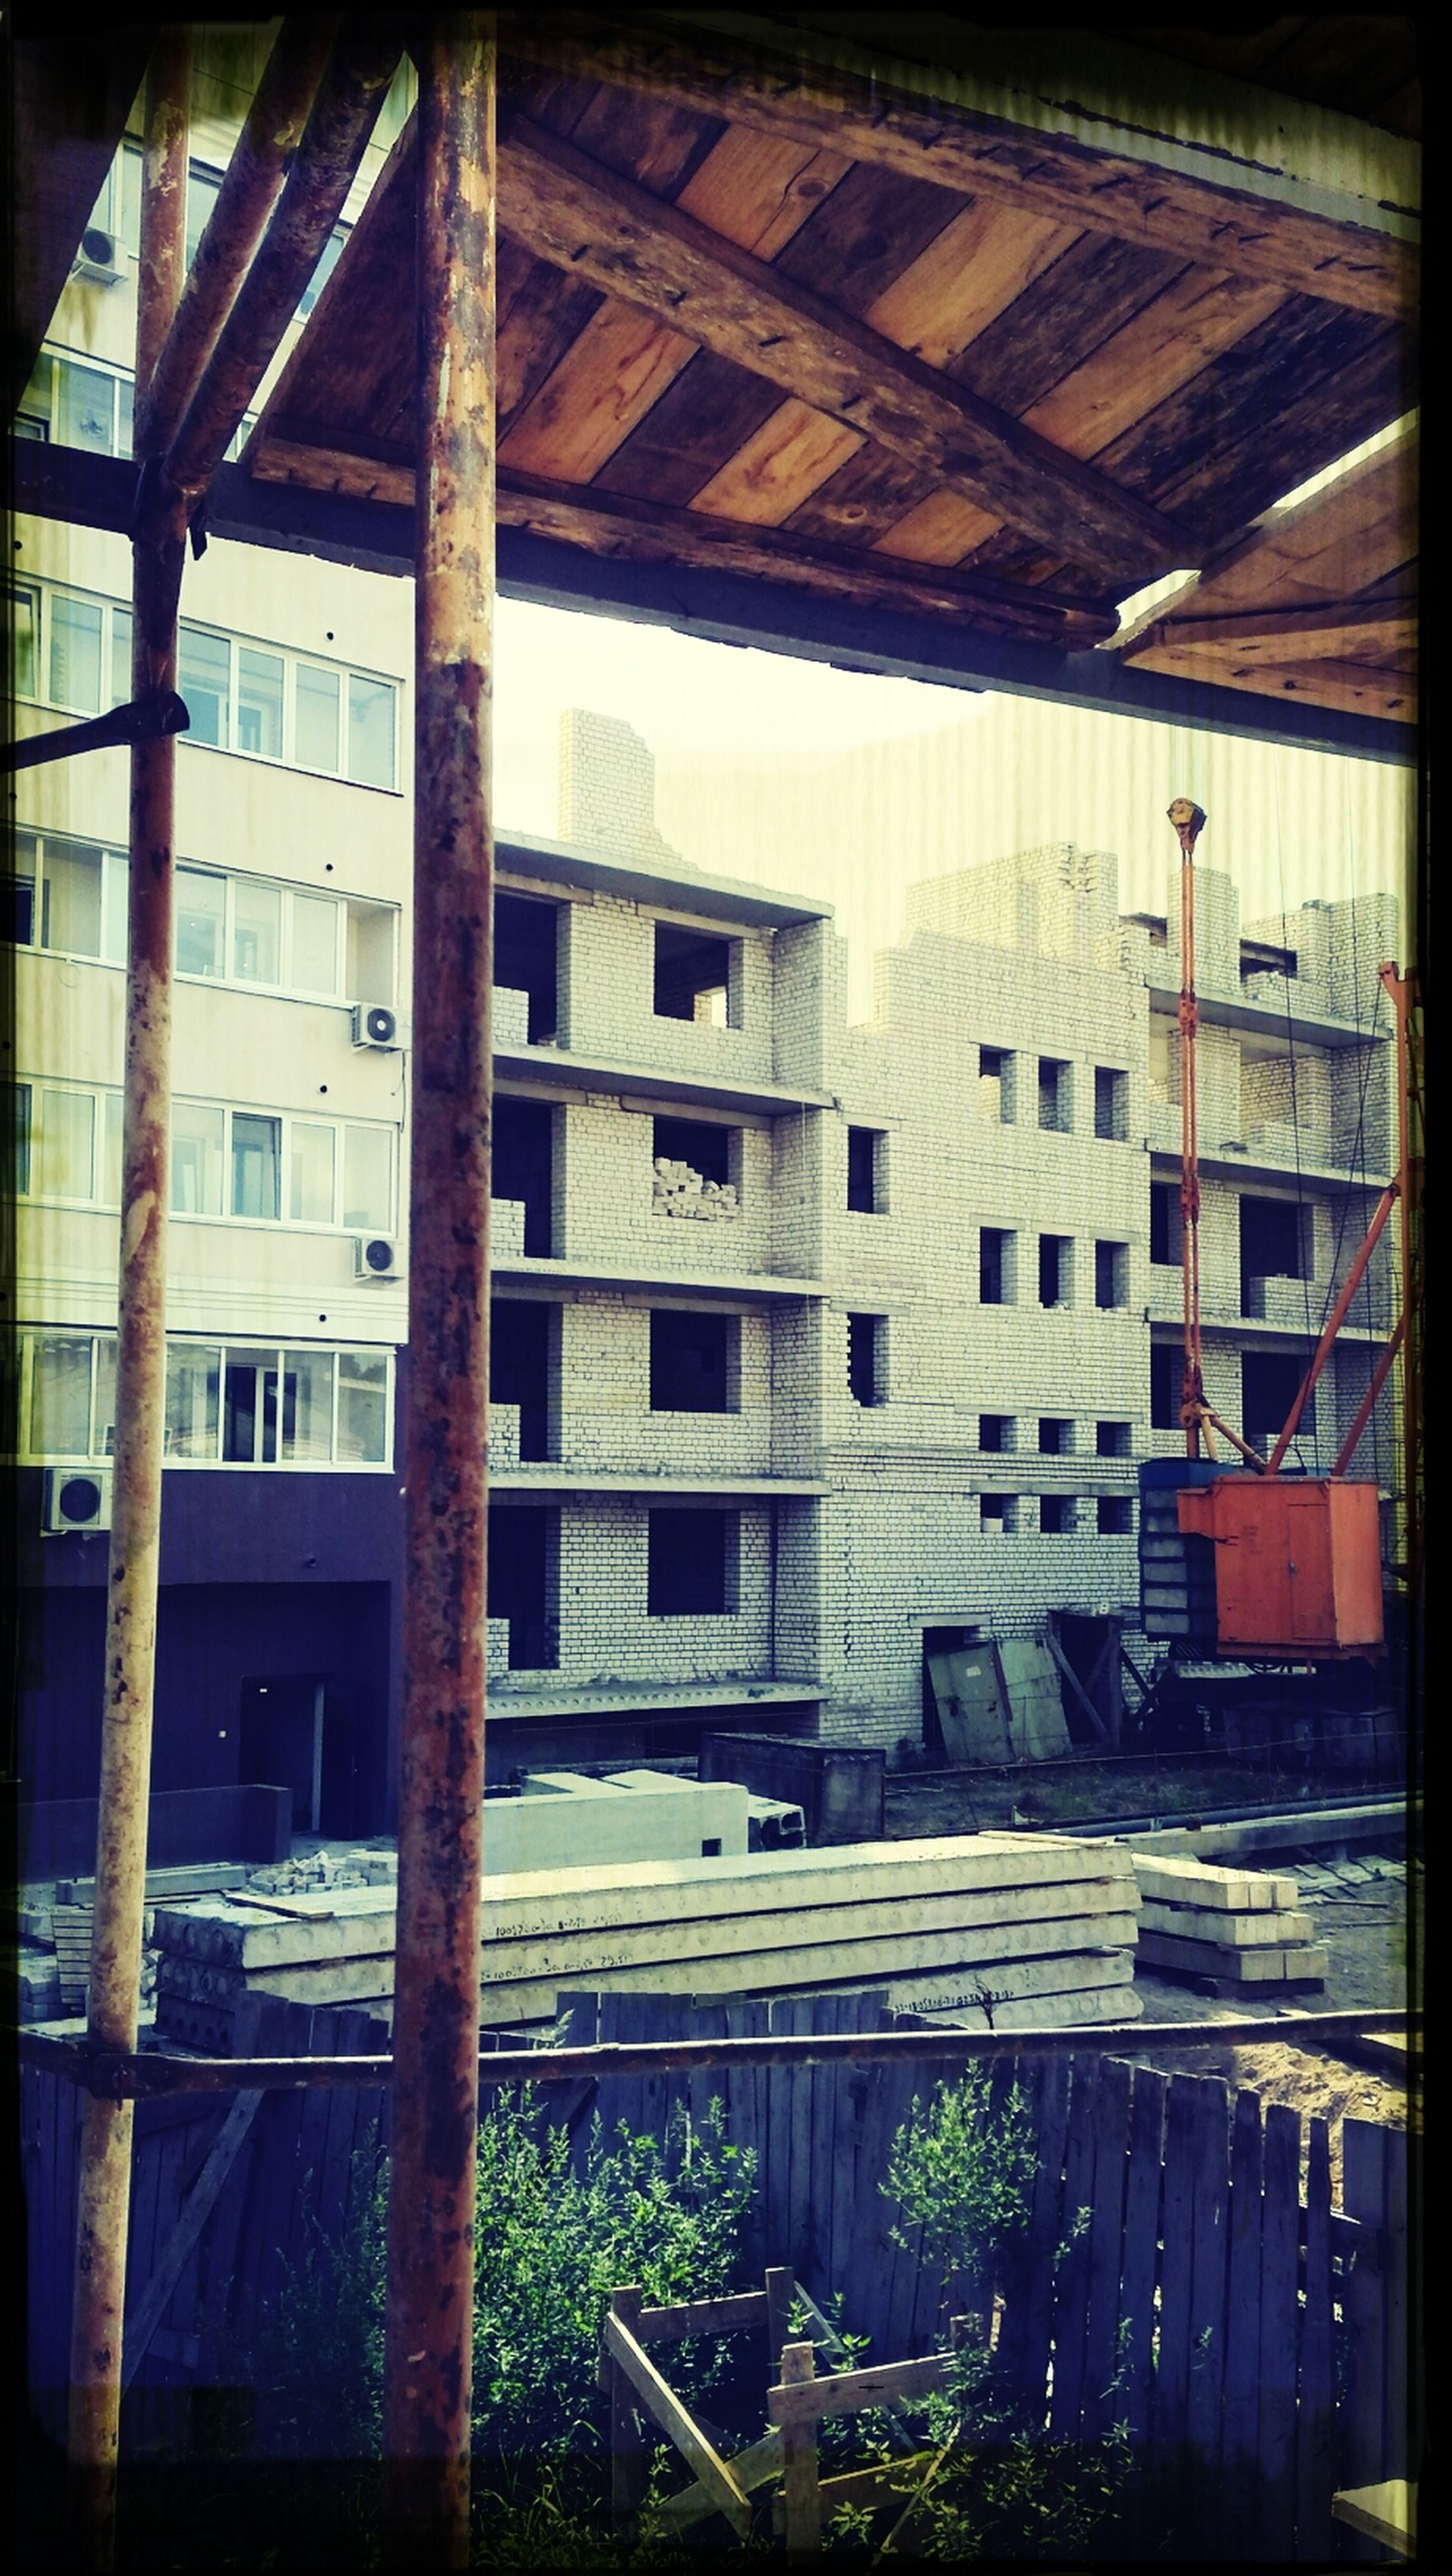 architecture, built structure, building exterior, window, house, residential structure, residential building, building, abandoned, old, day, no people, damaged, obsolete, outdoors, balcony, exterior, run-down, roof, sunlight